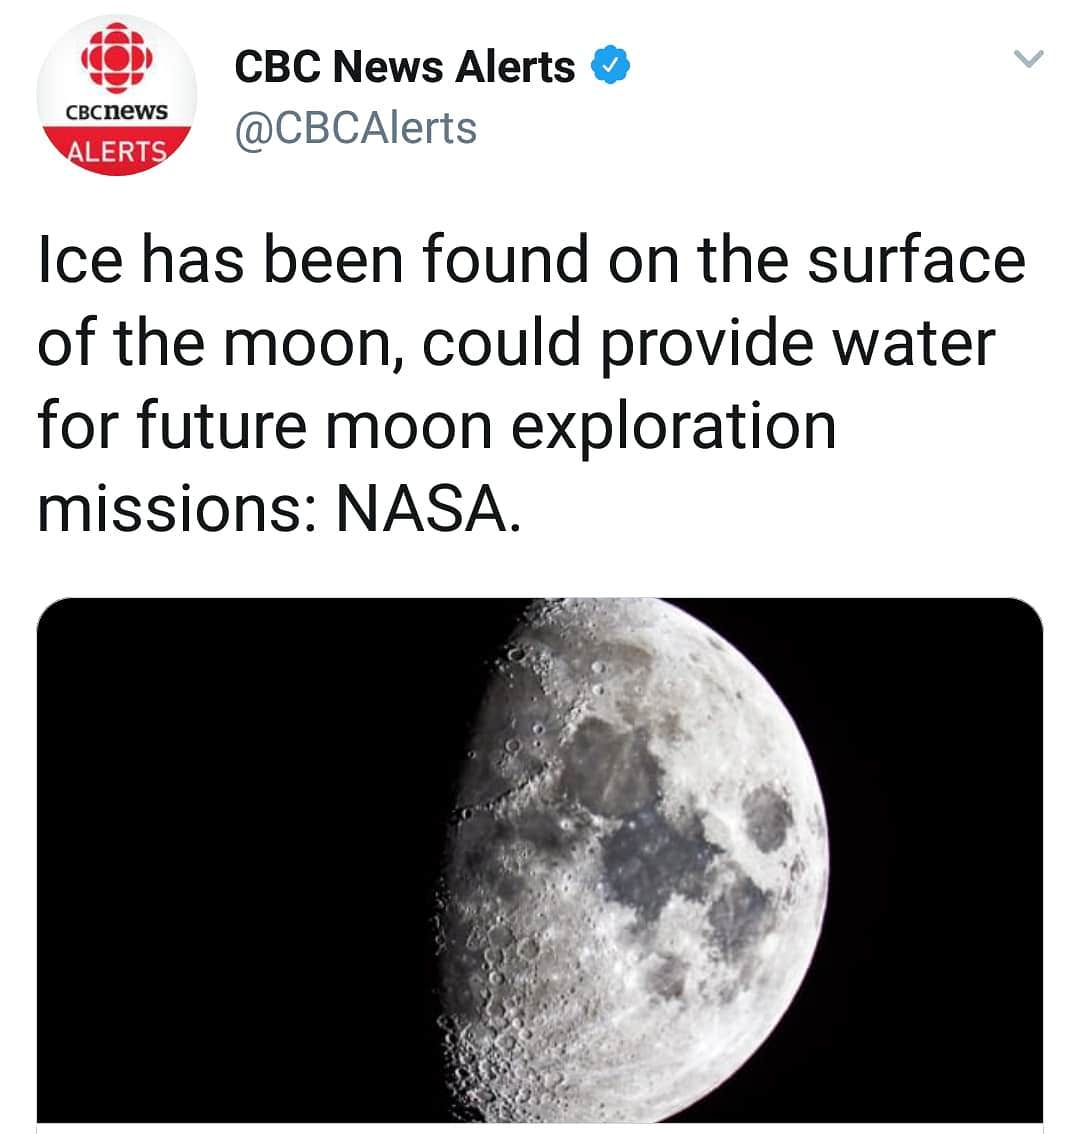 ICE FOUND ON MOON